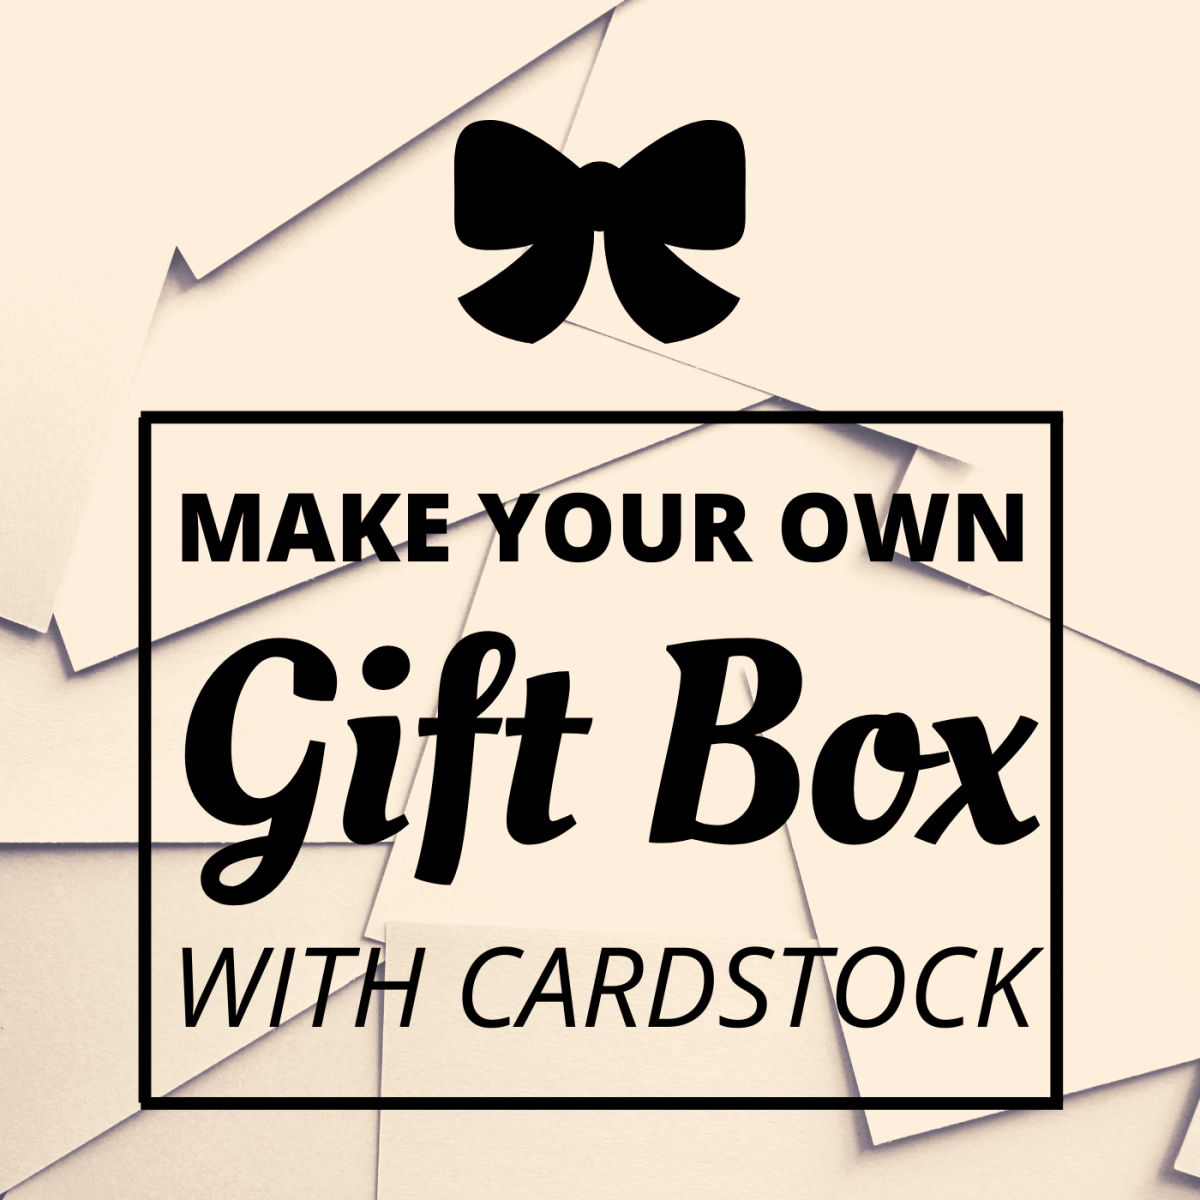 Learn how to make your own gift or craft box out of cardstock in 10 easy steps.